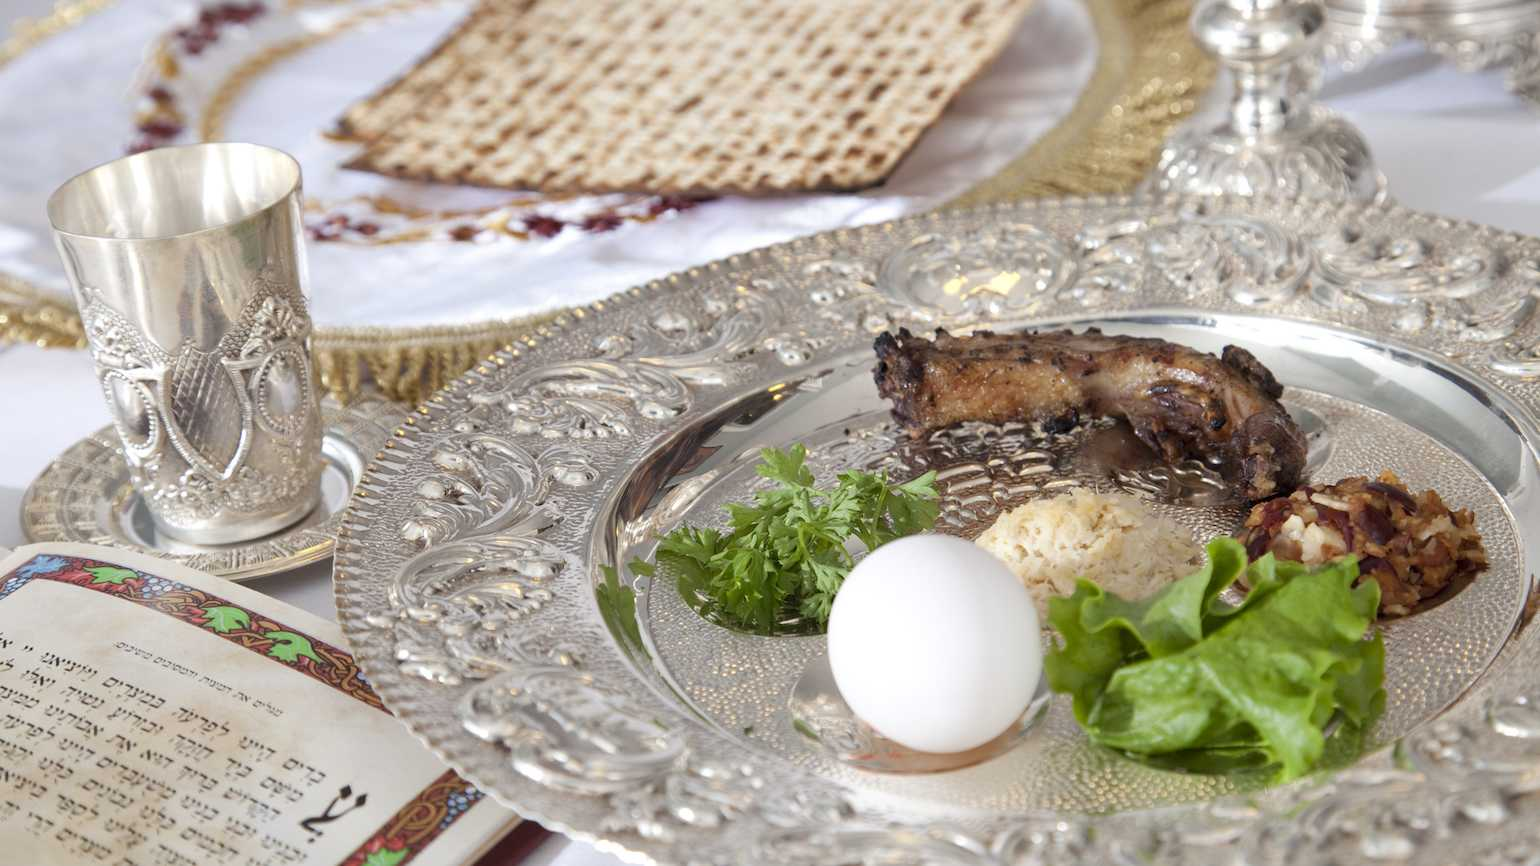 Seder at Passover